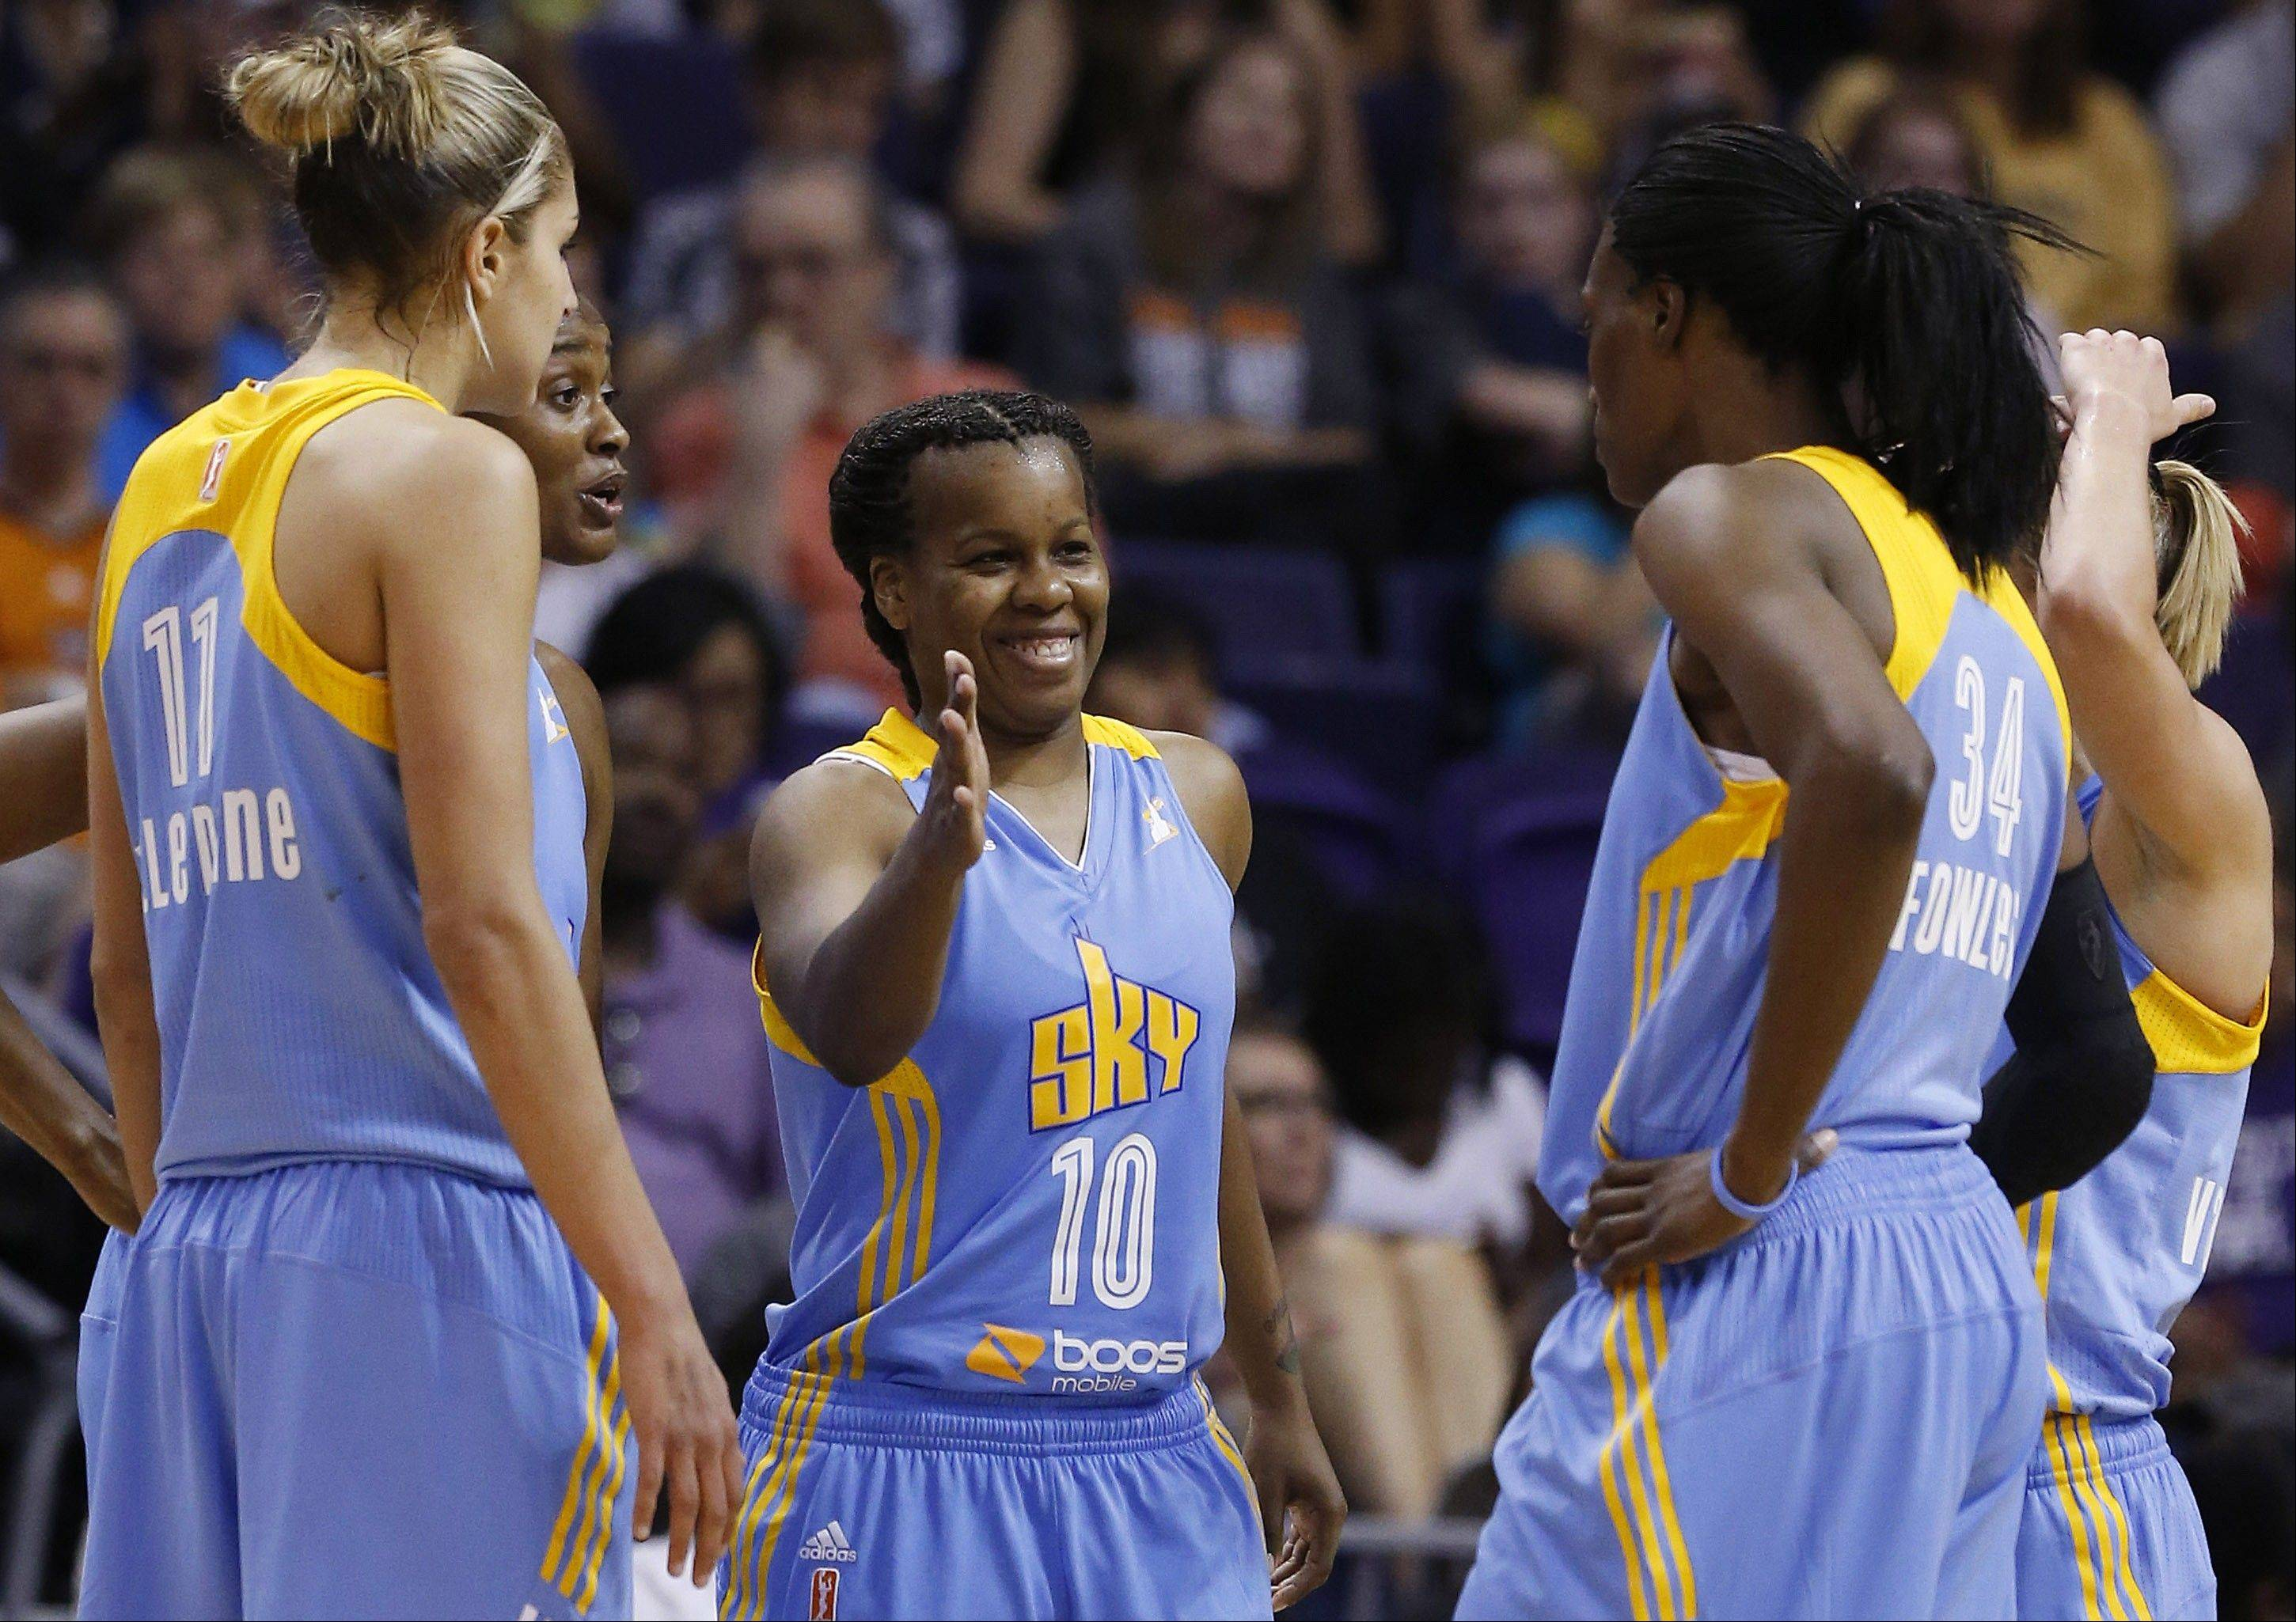 Chicago Sky's Epiphanny Prince (10) smiles as she celebrates a win over the Phoenix Mercury with rookie Elena Delle Donne (11) and veteran Sylvia Fowles (34). The Sky defeated the Mercury and rookie center Brittney Griner 102-80.